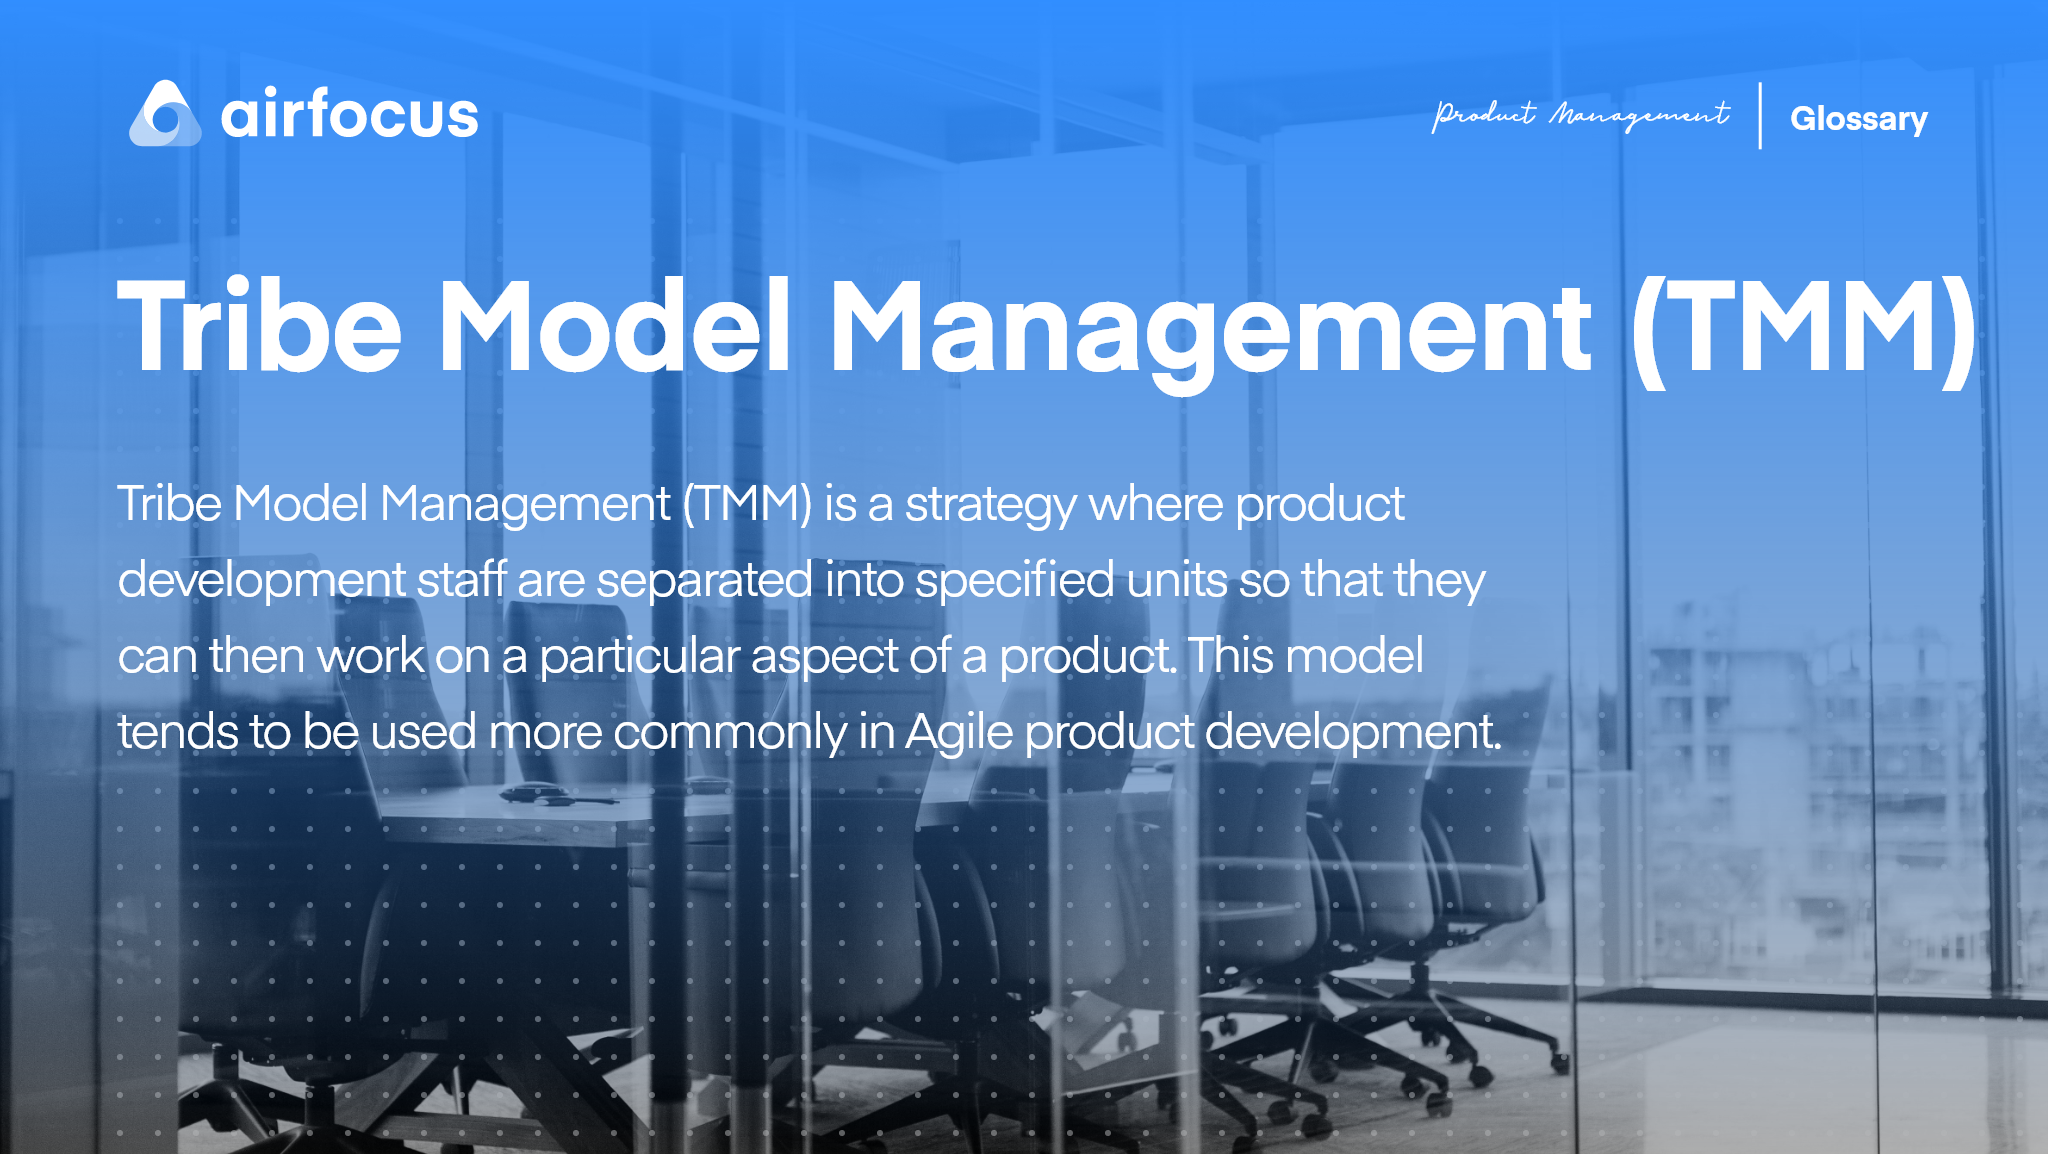 What is Tribe Model Management (TMM)?